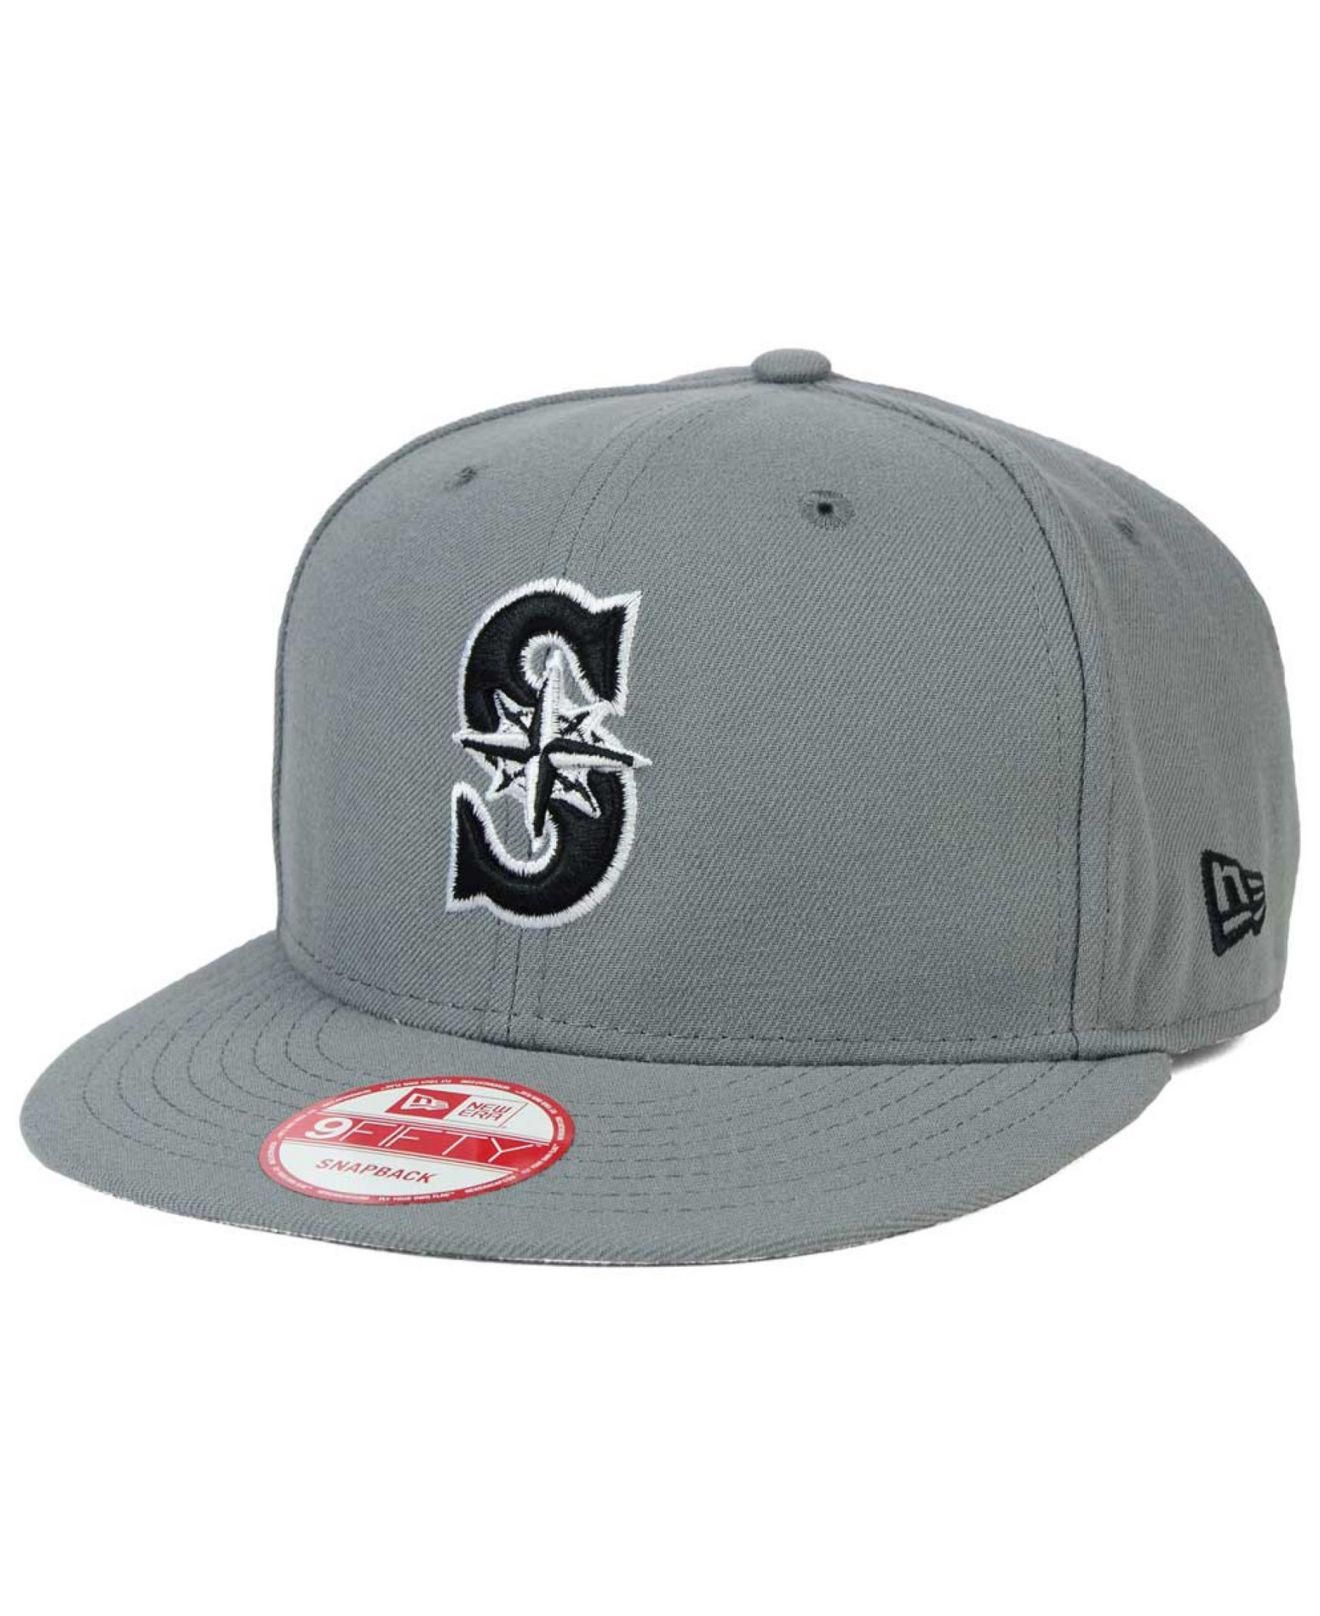 new arrival 94f16 68d90 Lyst - KTZ Seattle Mariners Gray Black White 9fifty Snapback Cap in ...